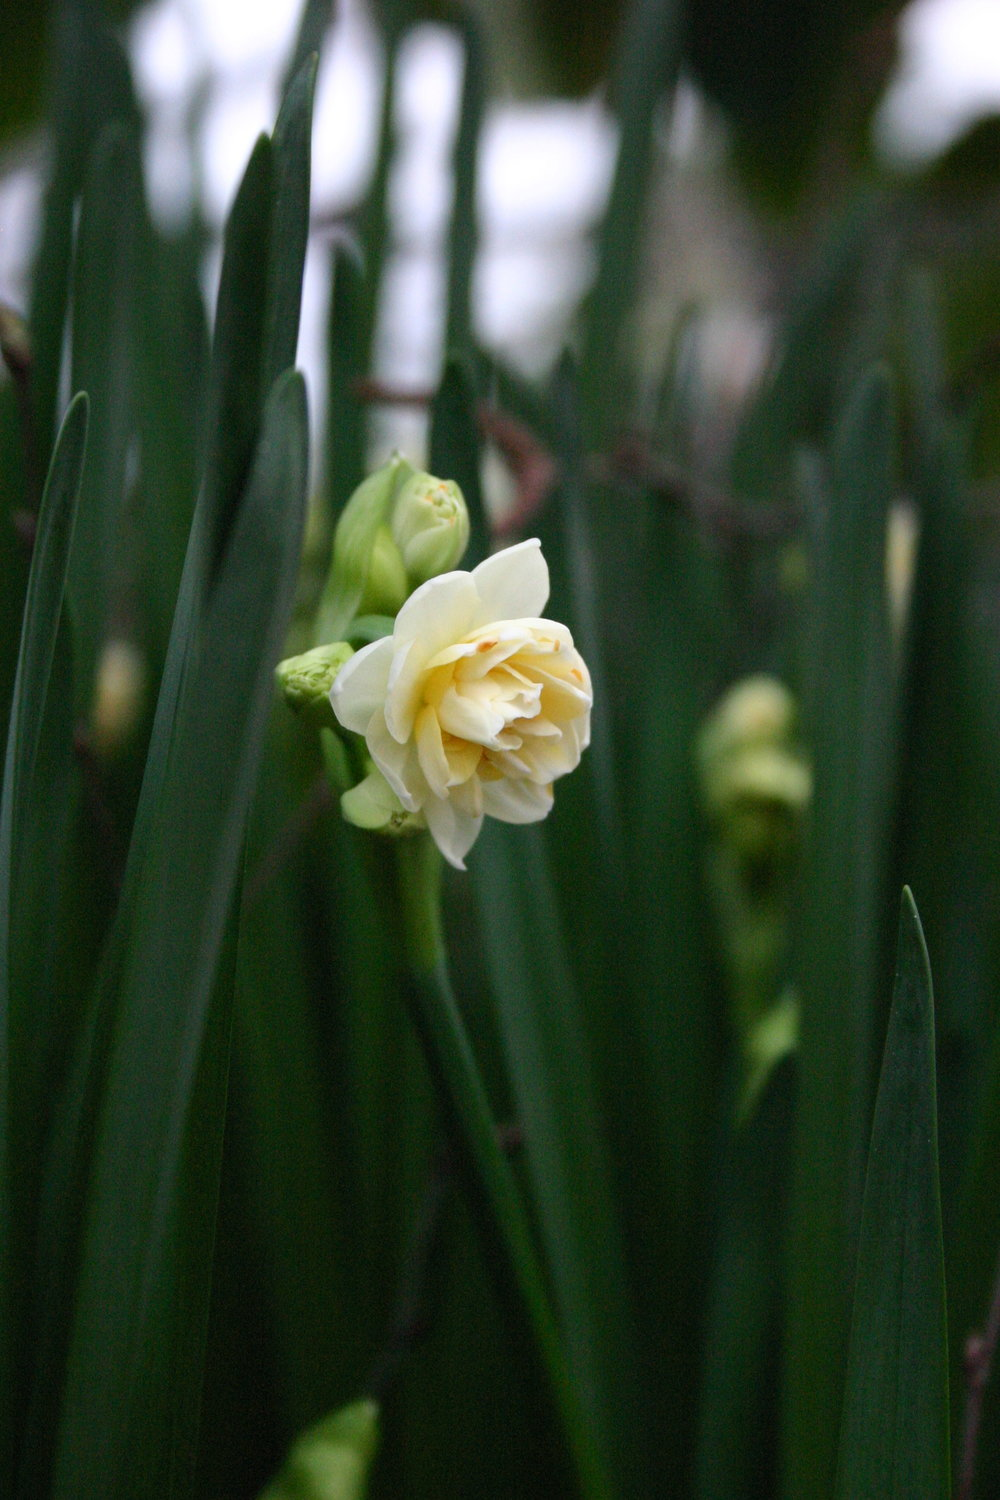 Paperwhite narcissi in an urn at Petersham